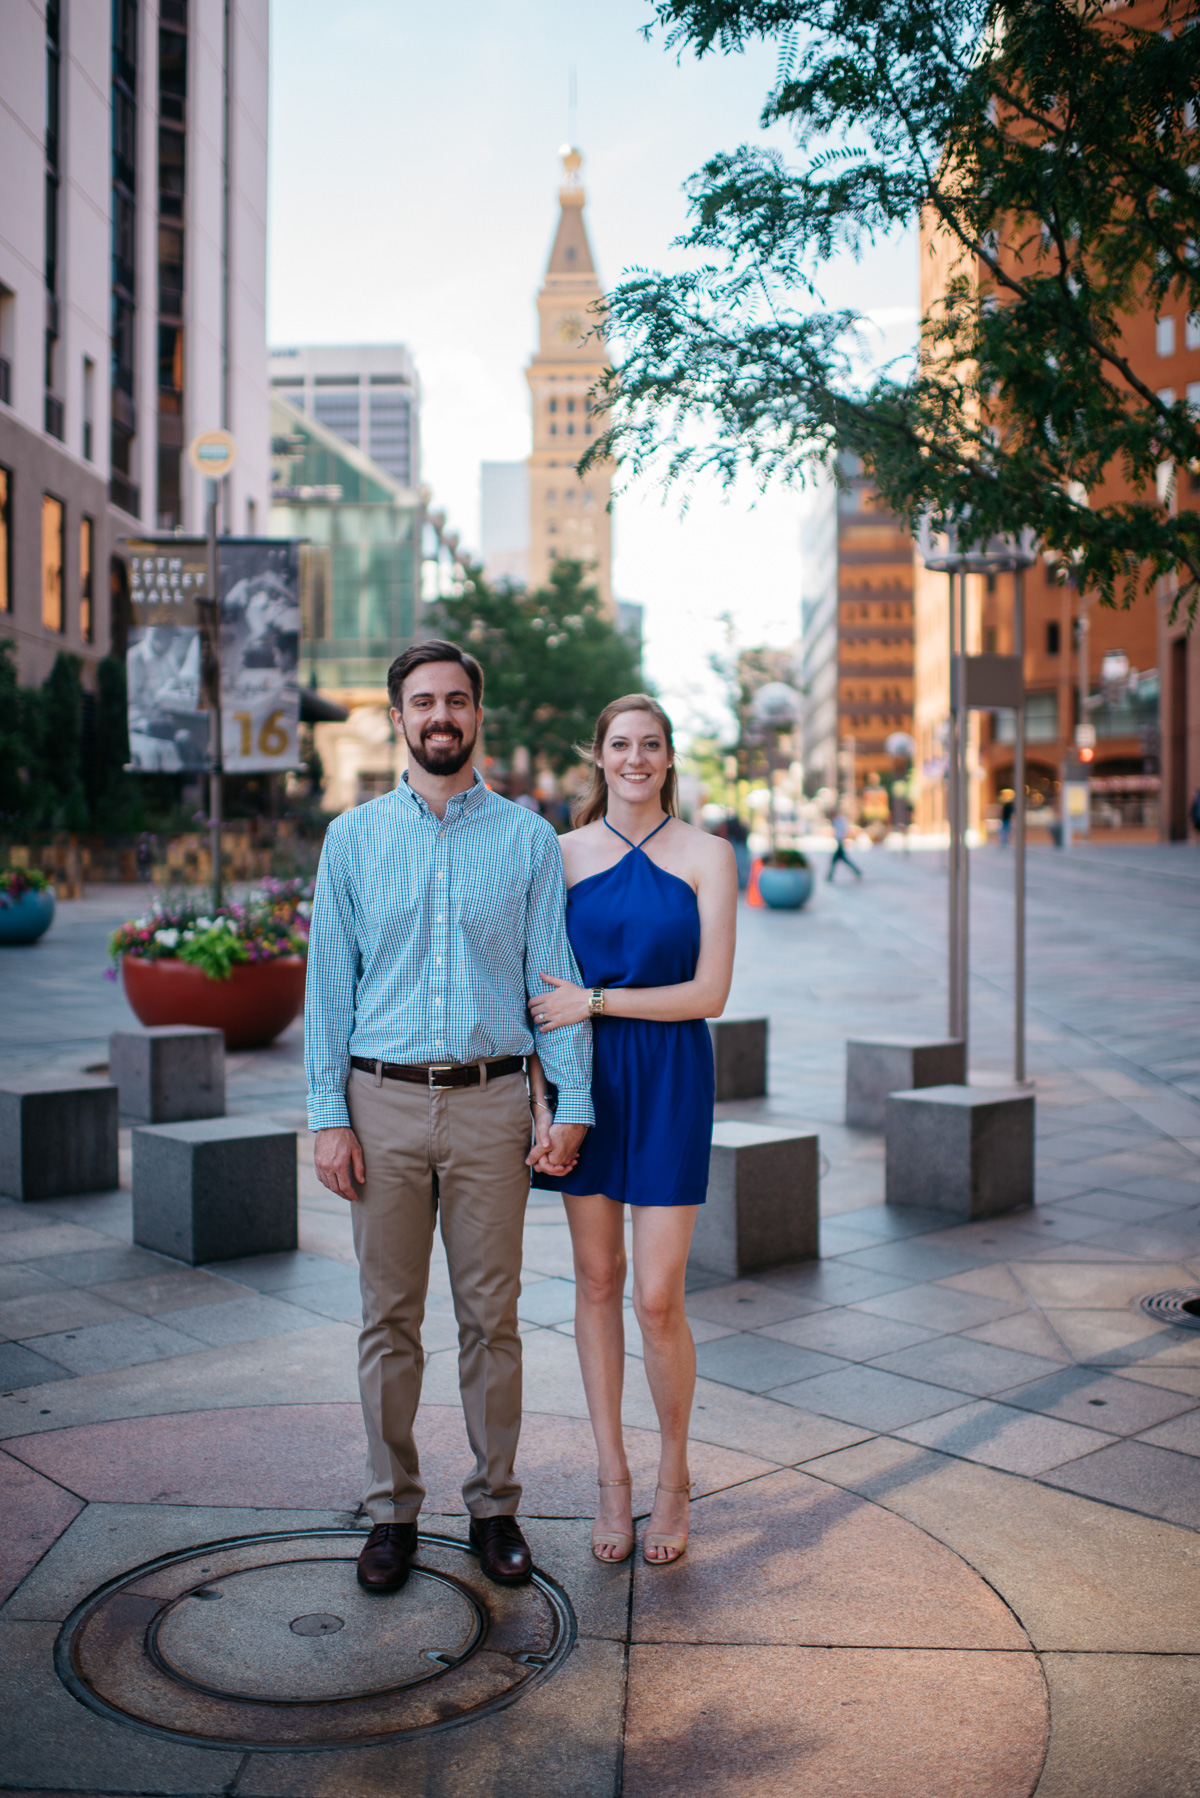 Downtown Denver engagement session by the clock tower